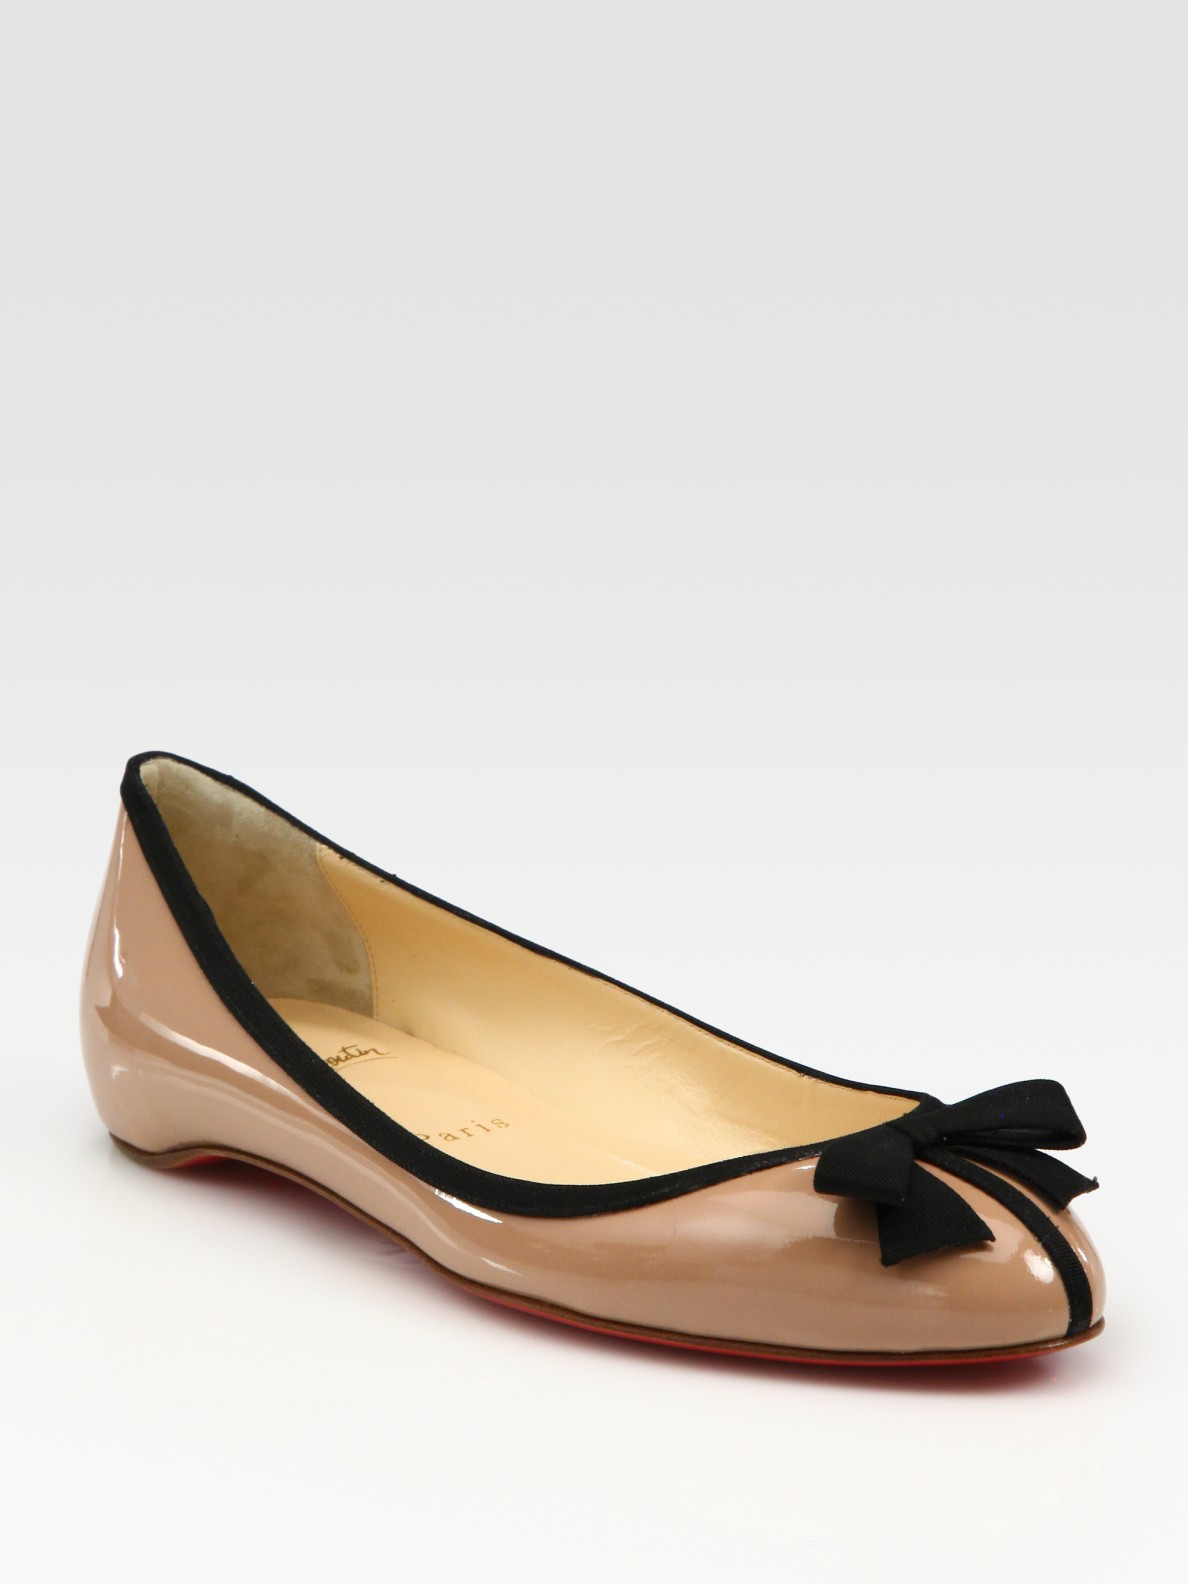 36d966dfb5f Lyst - Christian Louboutin Patent Leather Bow Ballet Flats in Natural